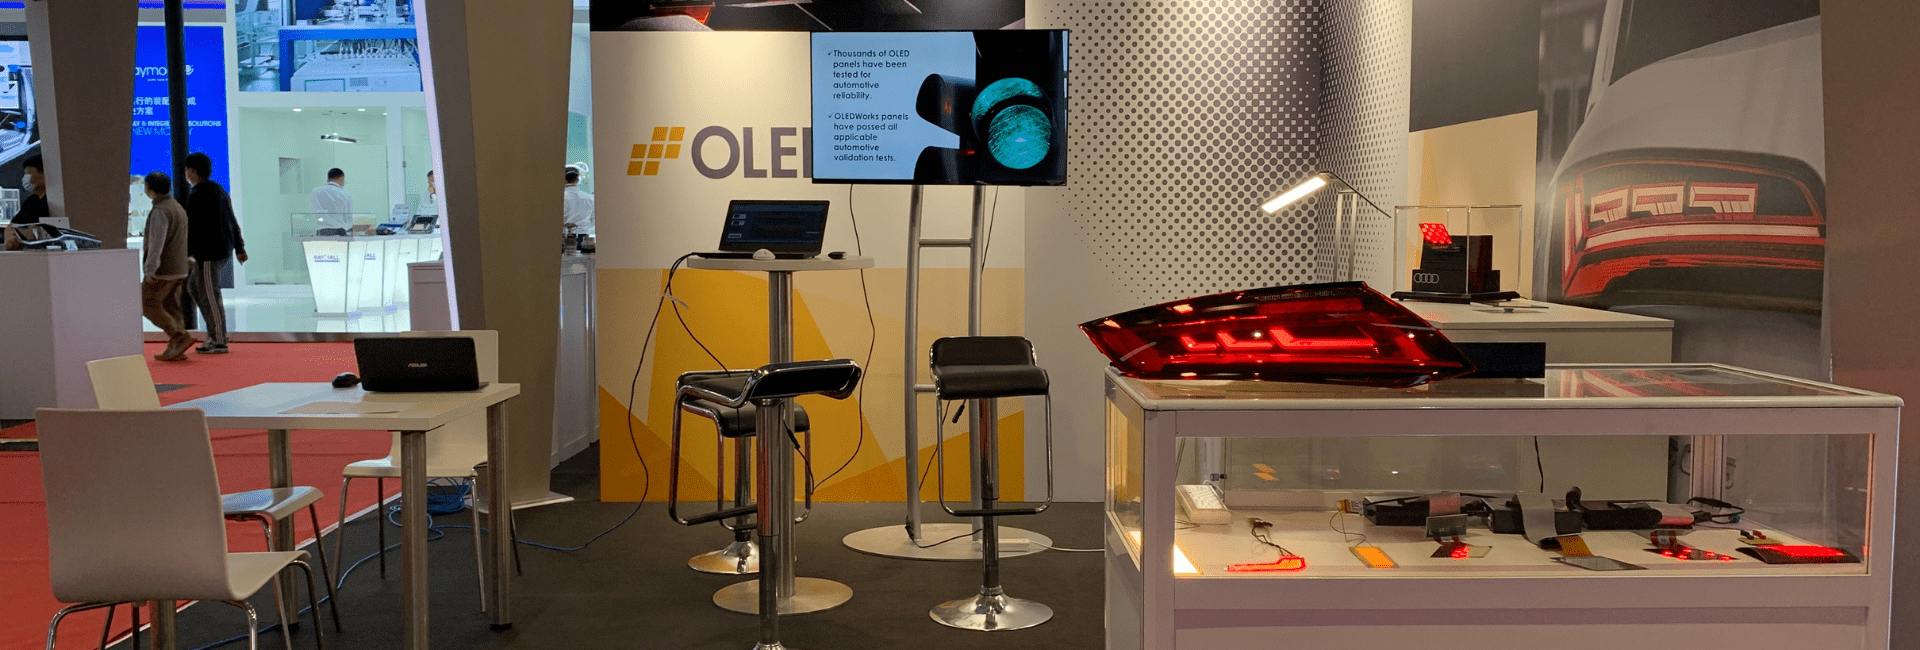 Automotive OLED Lighting Solutions Featured in the OLEDWorks Booth at the Largest Automotive Show in the World